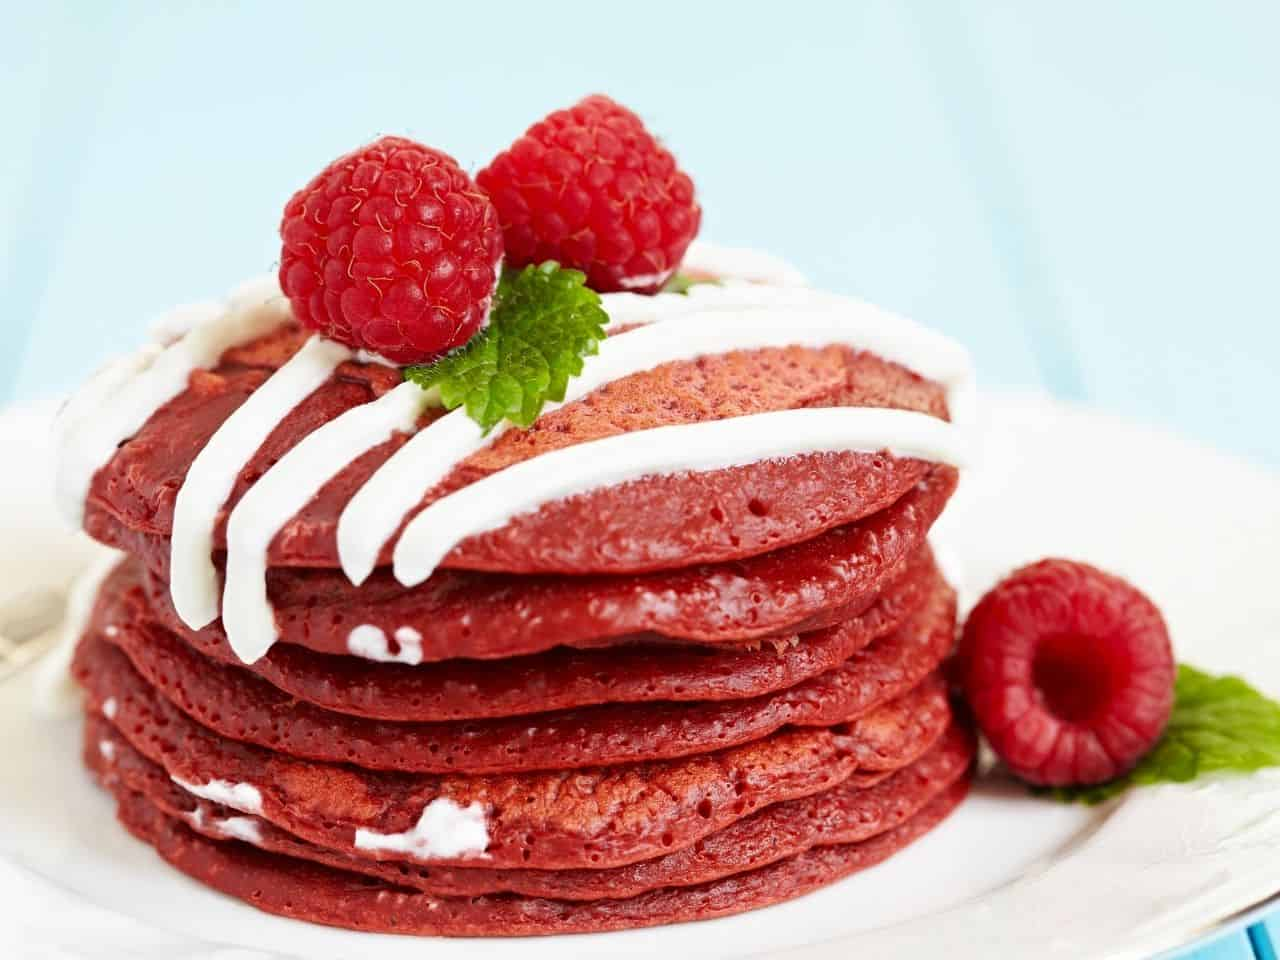 Pancakes topped with raspberries